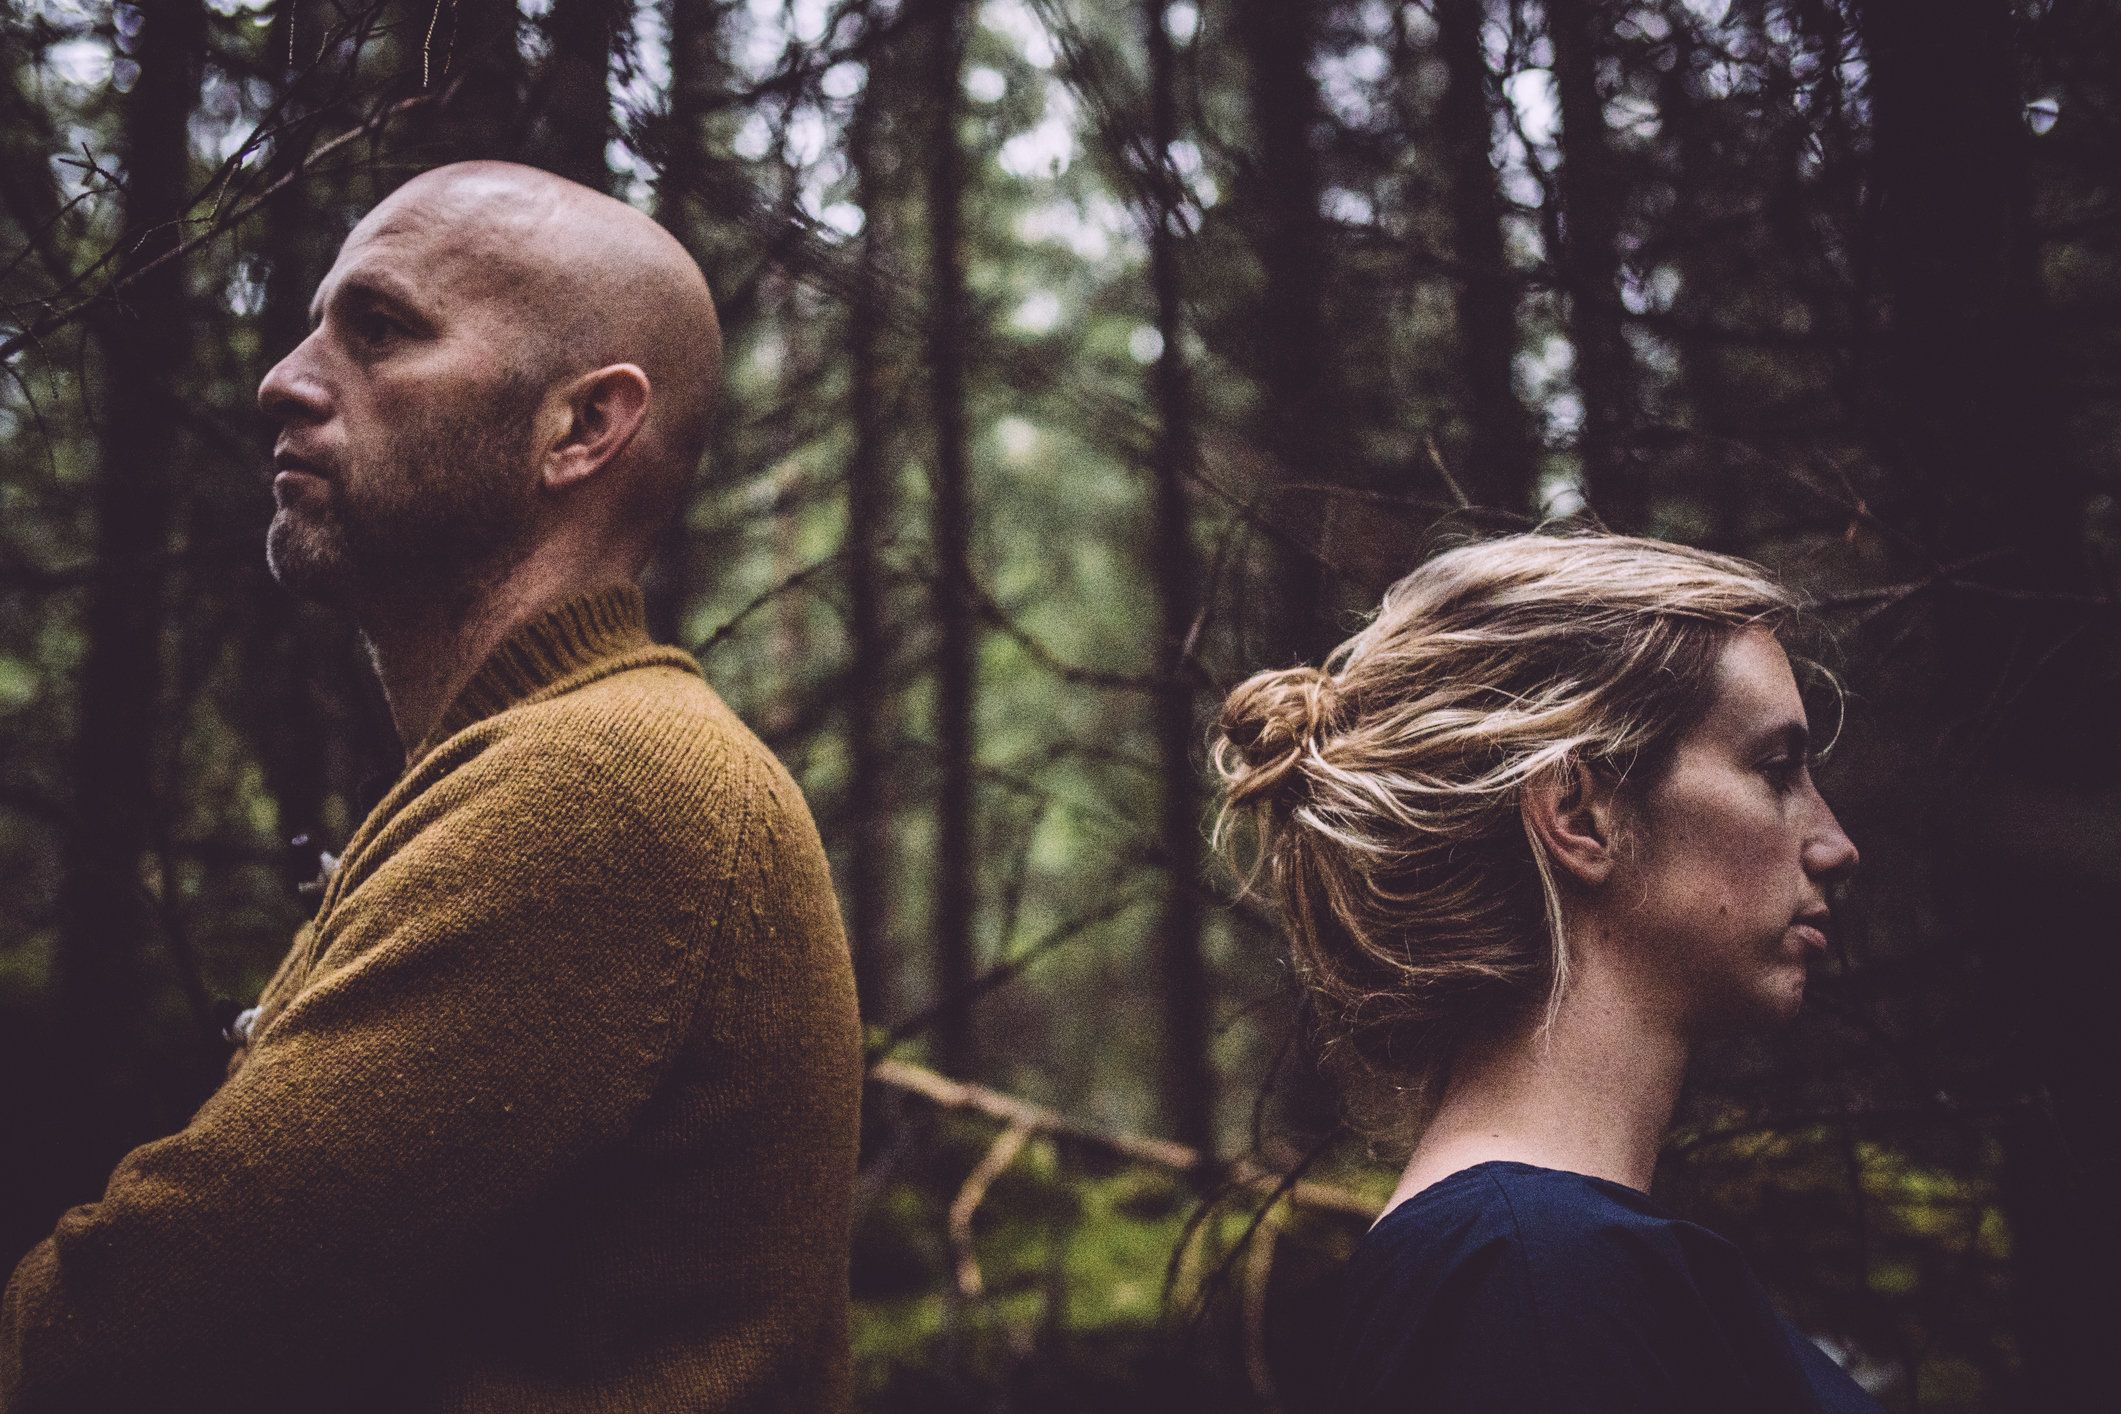 Couple with back to each other in forest